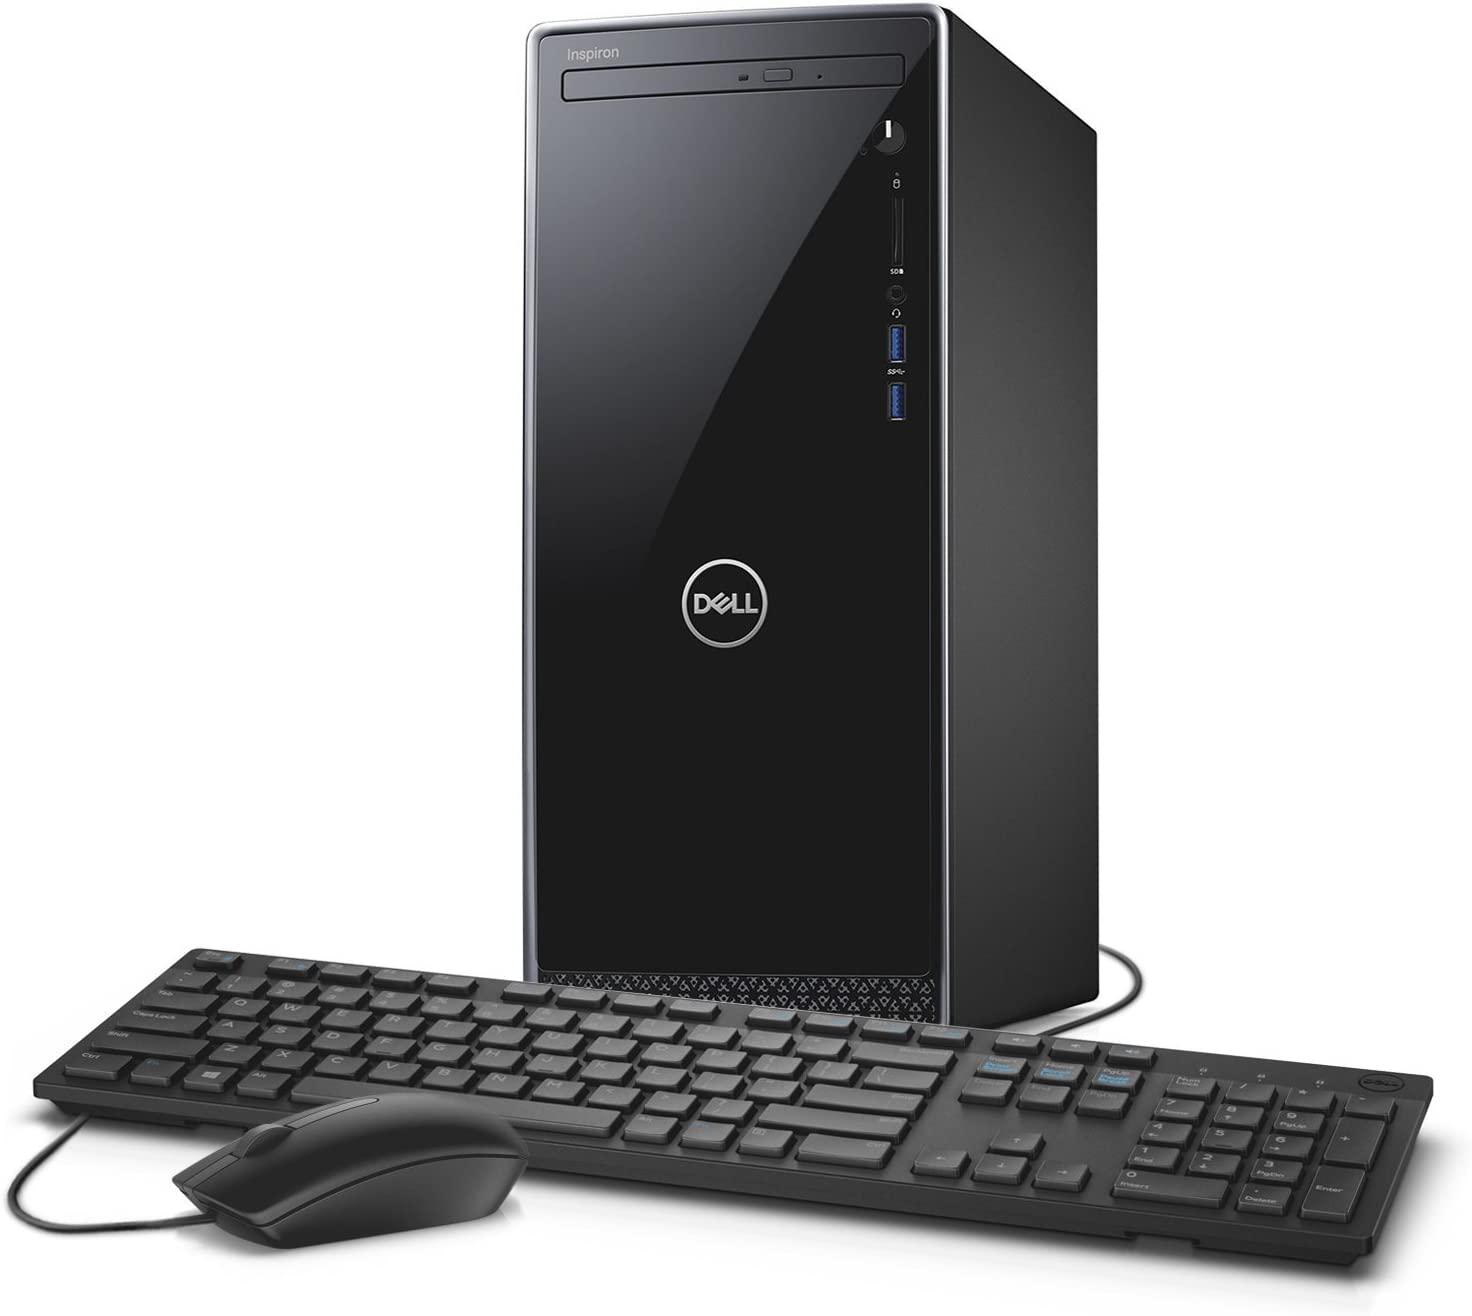 Dell Inspiron i3670 Desktop - 8th Gen Intel Core i7-8700 6-Core up to 4.60 GHz, 16GB DDR4 Memory, 2TB SATA Hard Drive, 2GB Nvidia GeForce GT 1030, DVD Burner, Windows 10 Pro (Renewed)